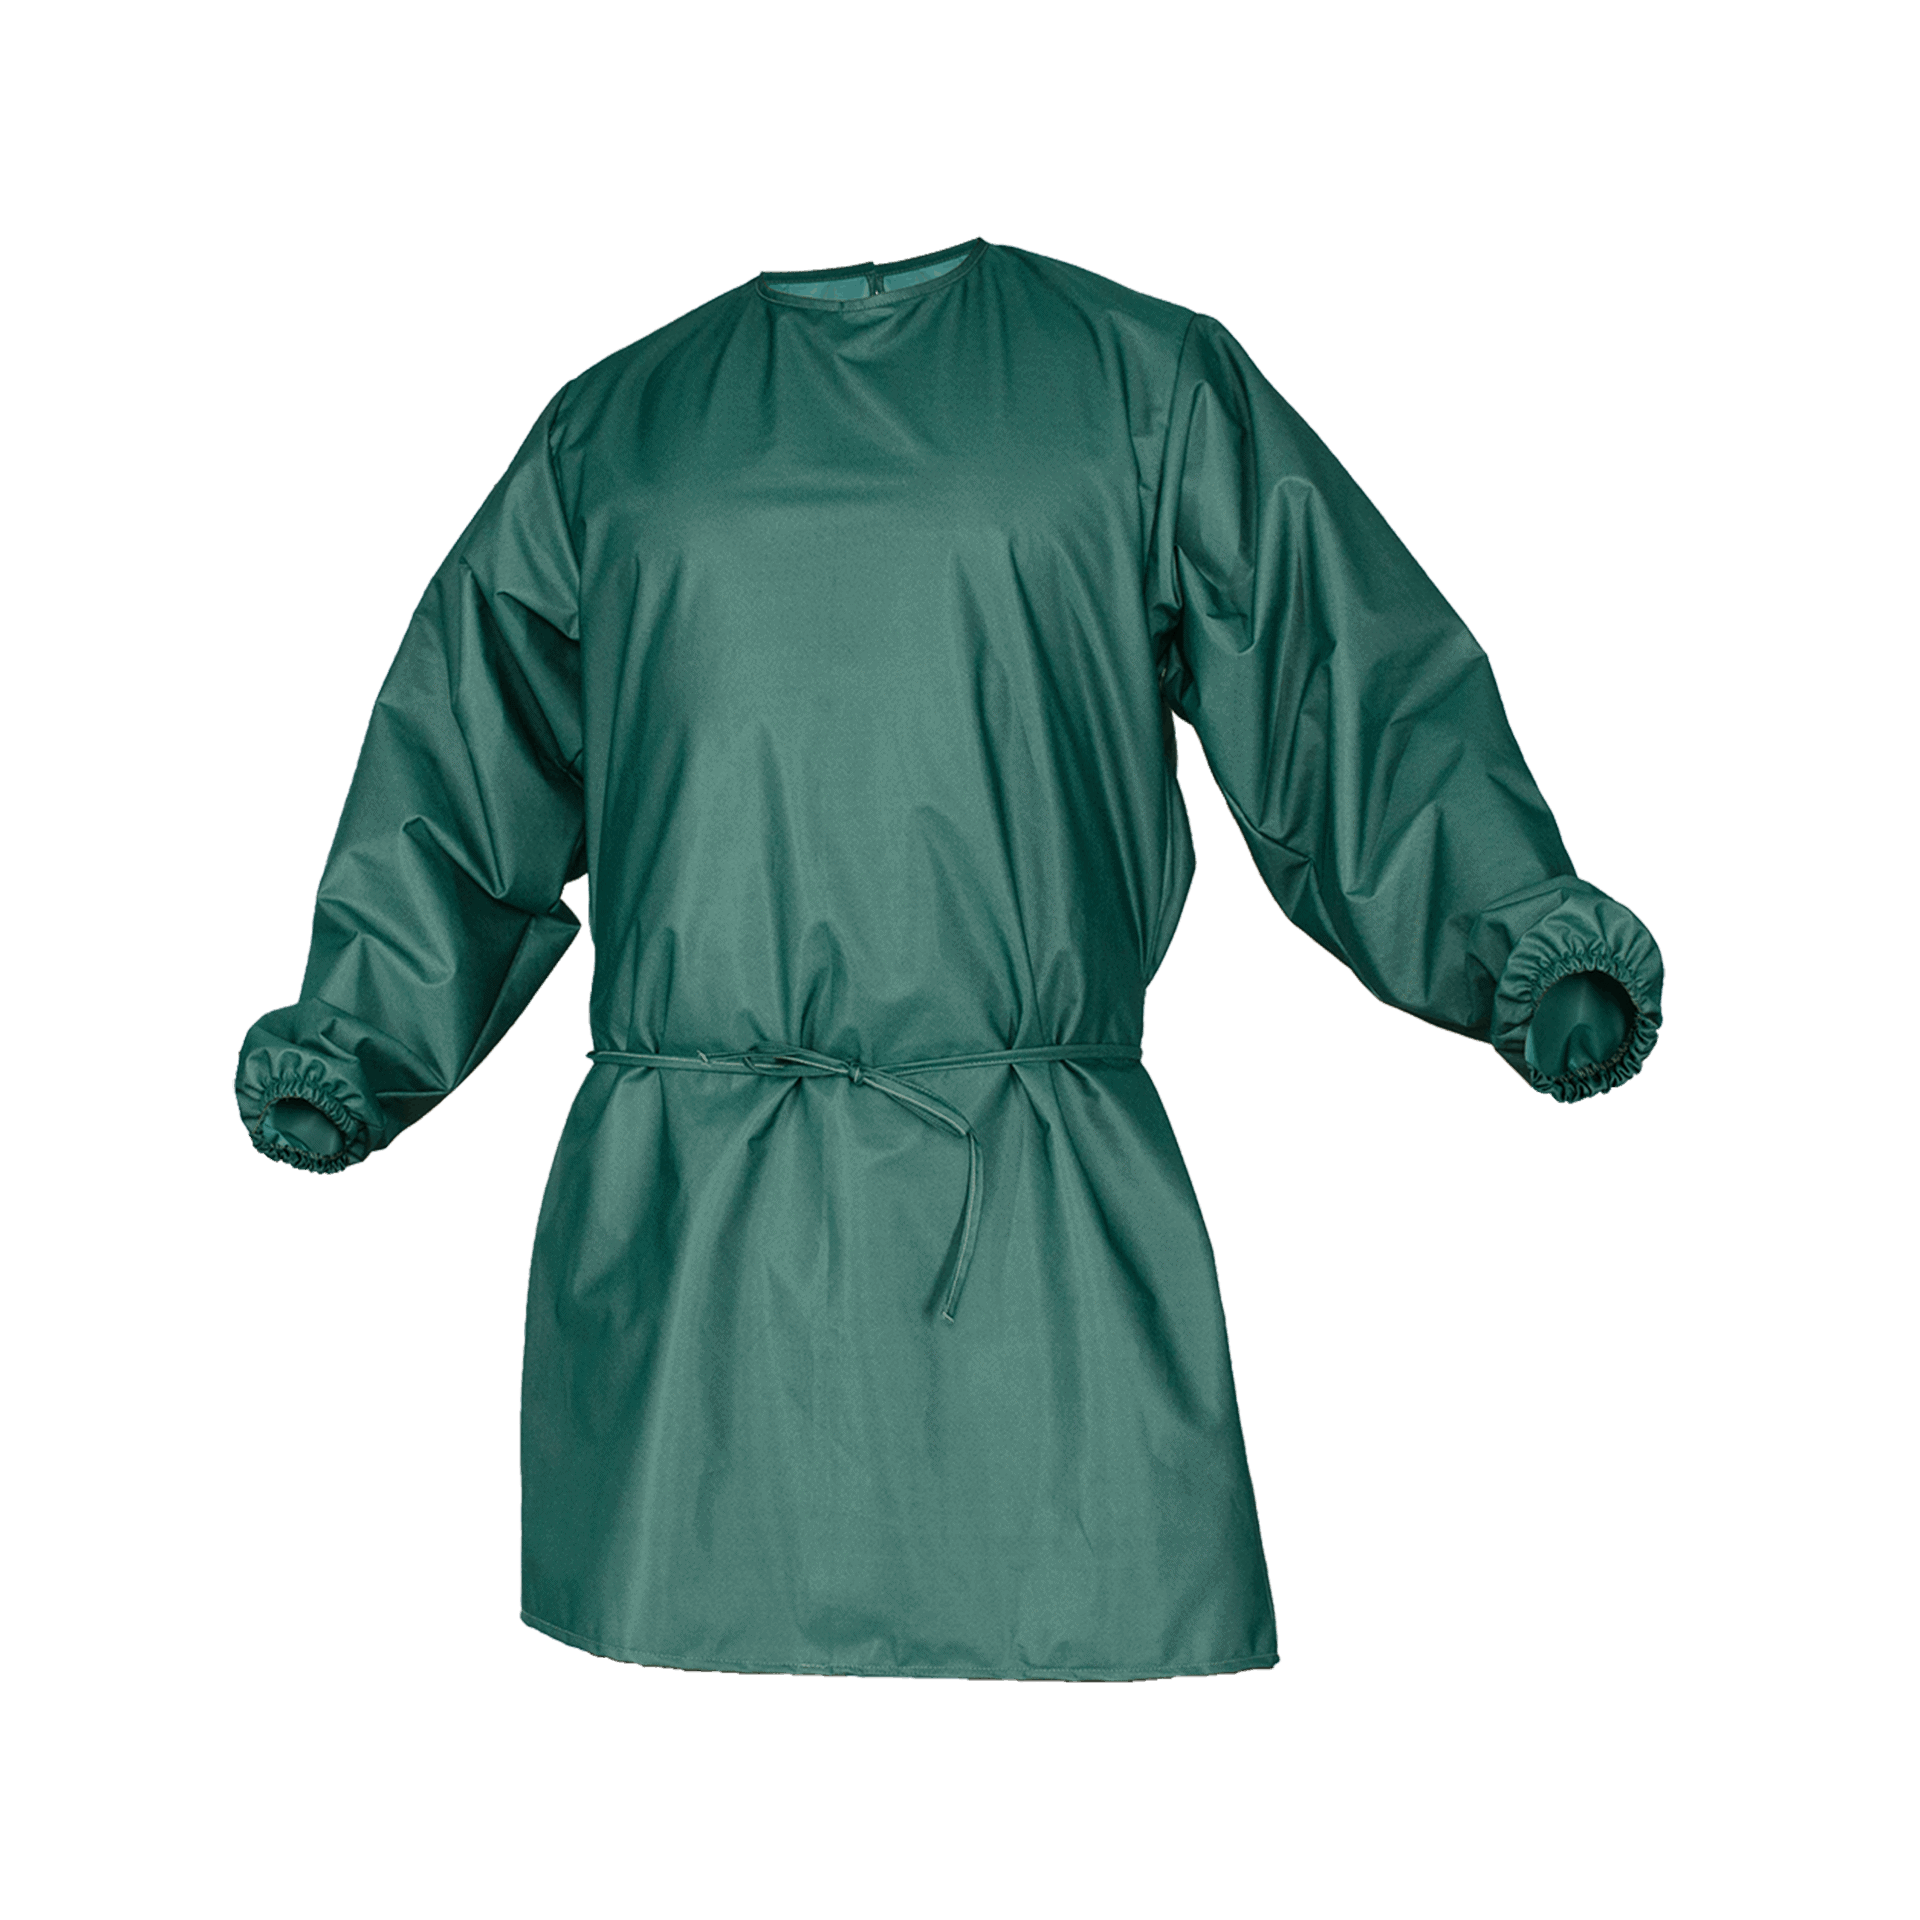 Fire-Dex Isolation PPE Gown